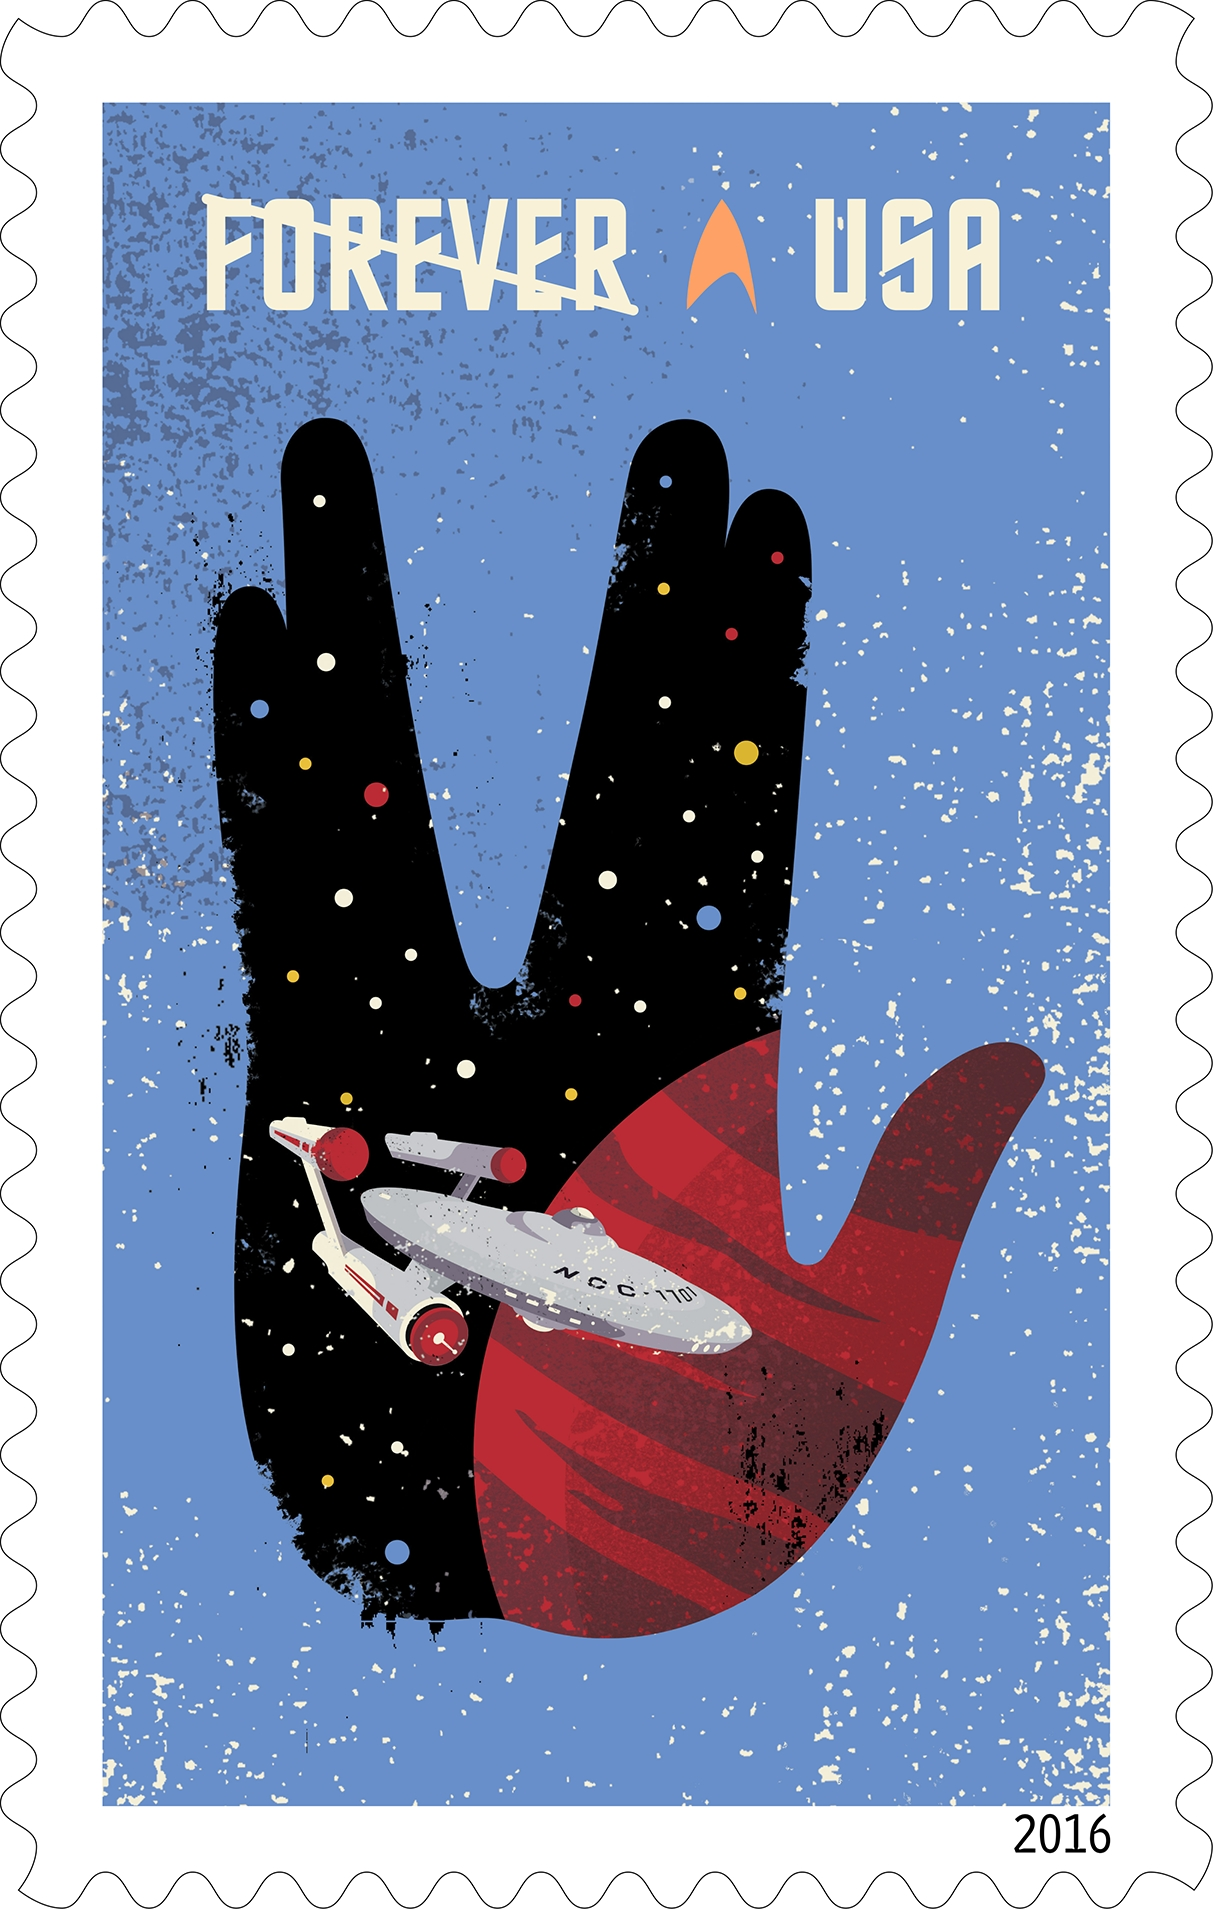 'Star Trek' 50th Anniversary Postage Stamps: USPS Photos